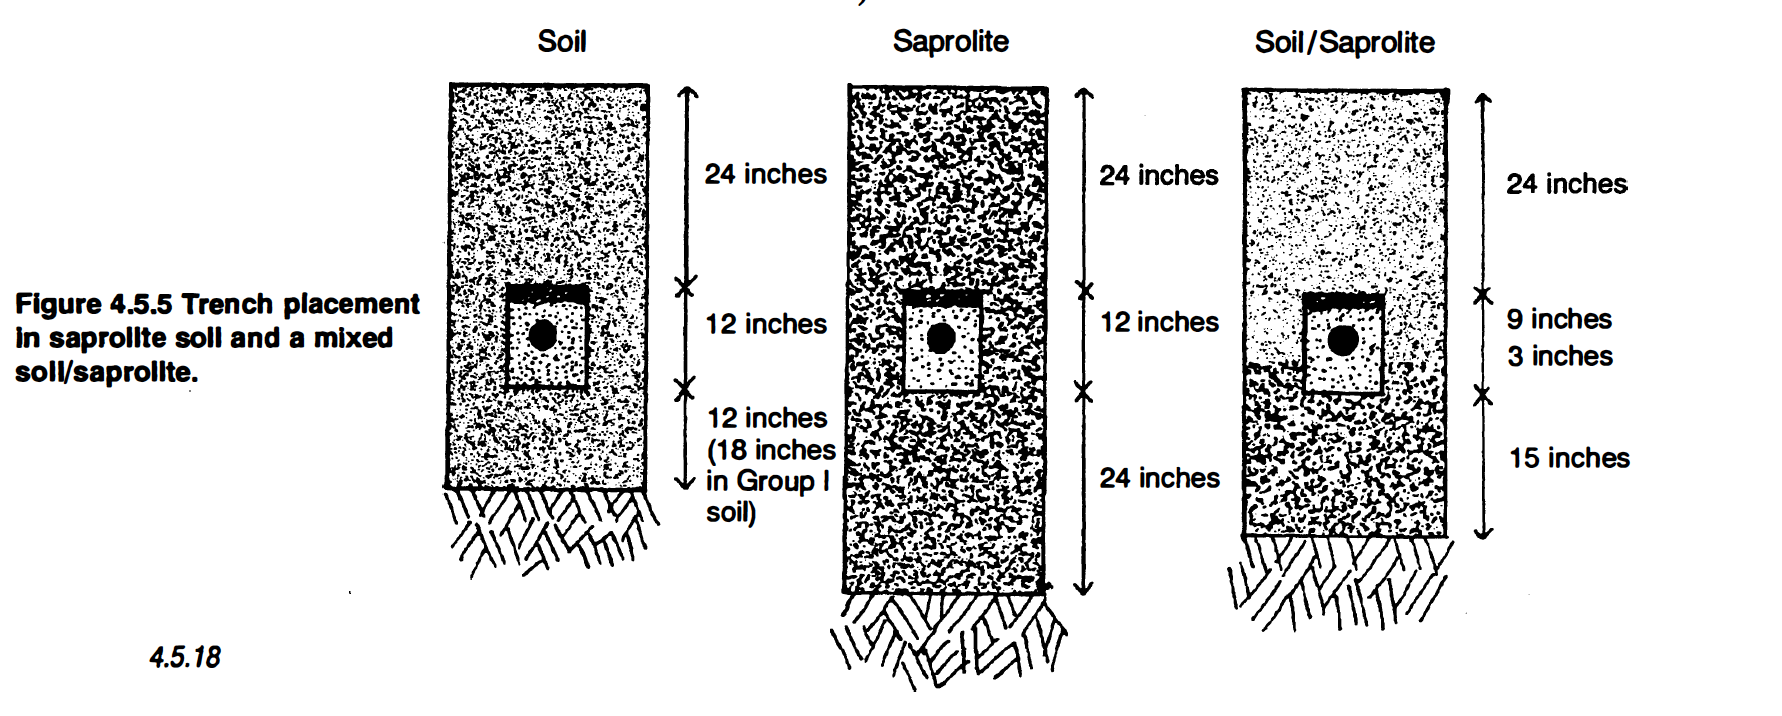 Septic Trench Placement in Saprolite Soil